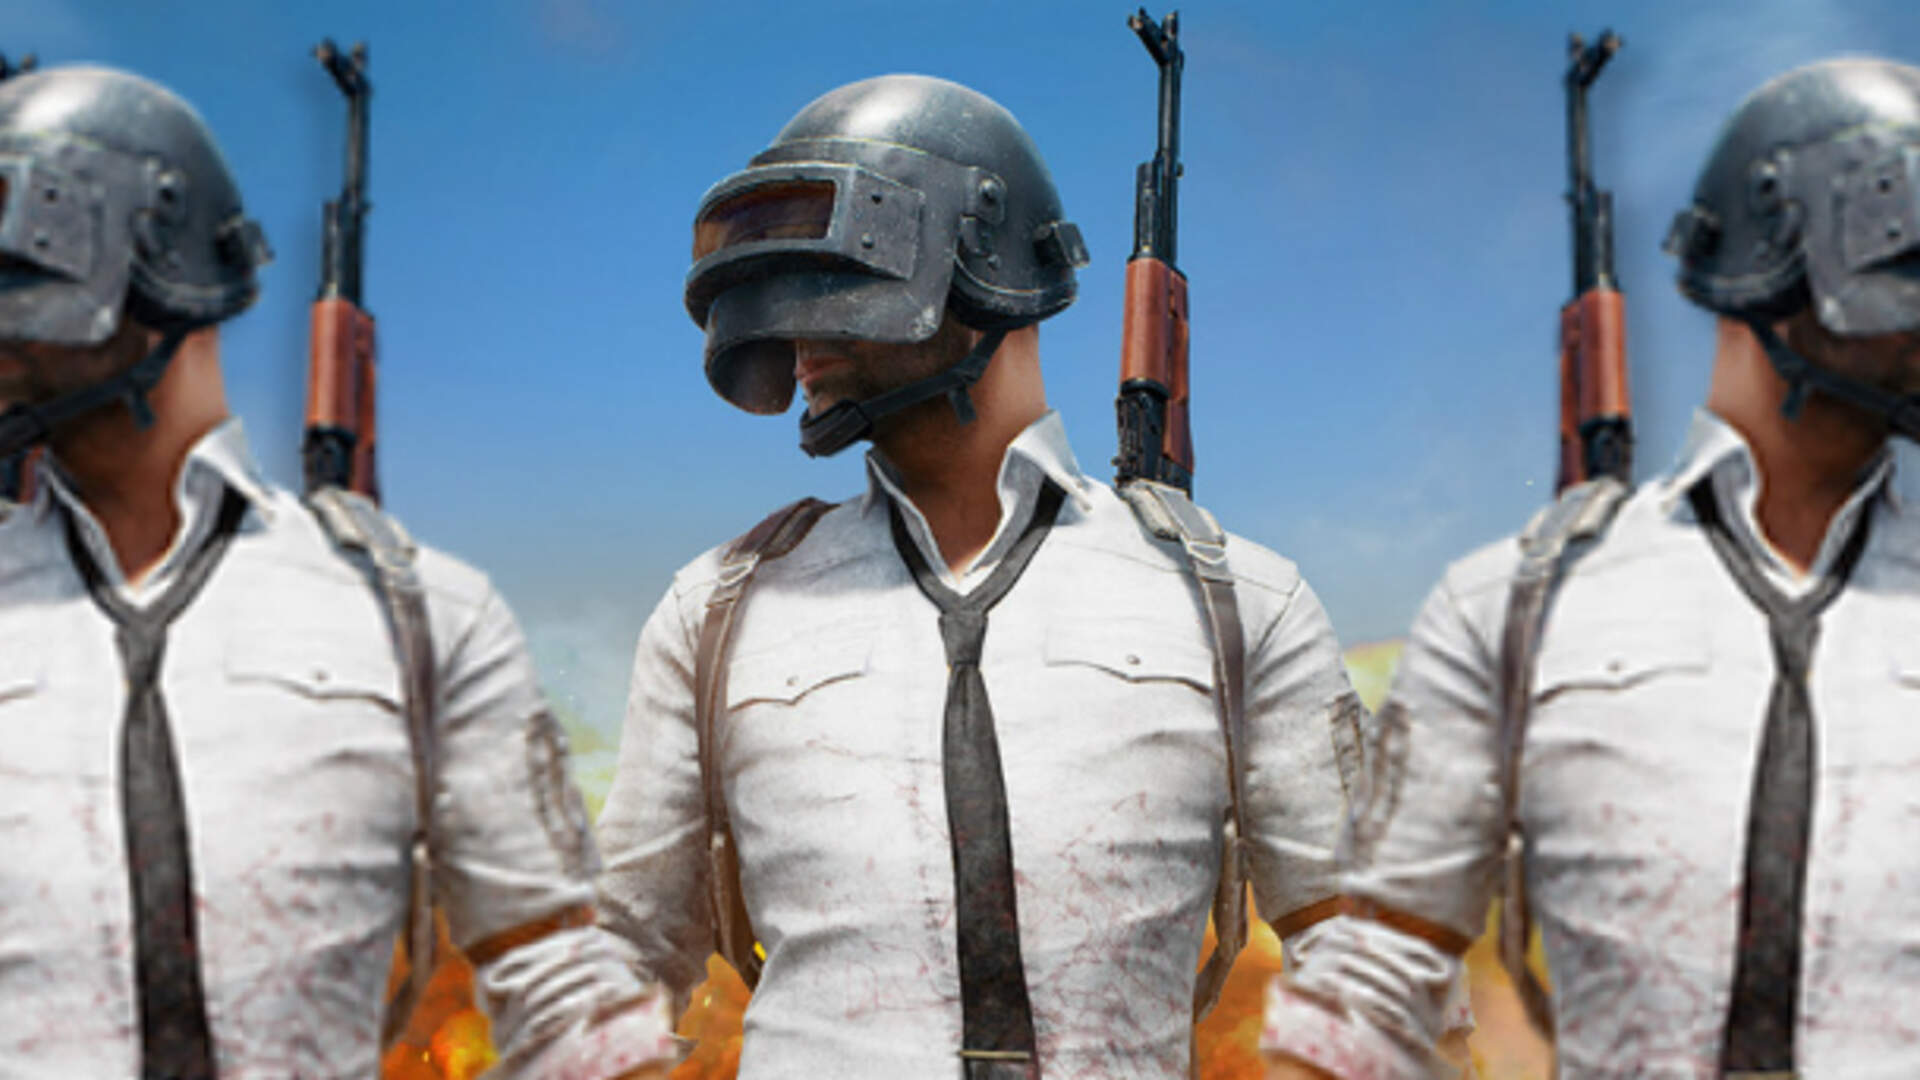 PlayerUnknown's Battlegrounds Defines The Next Genre Everyone's Going to Copy